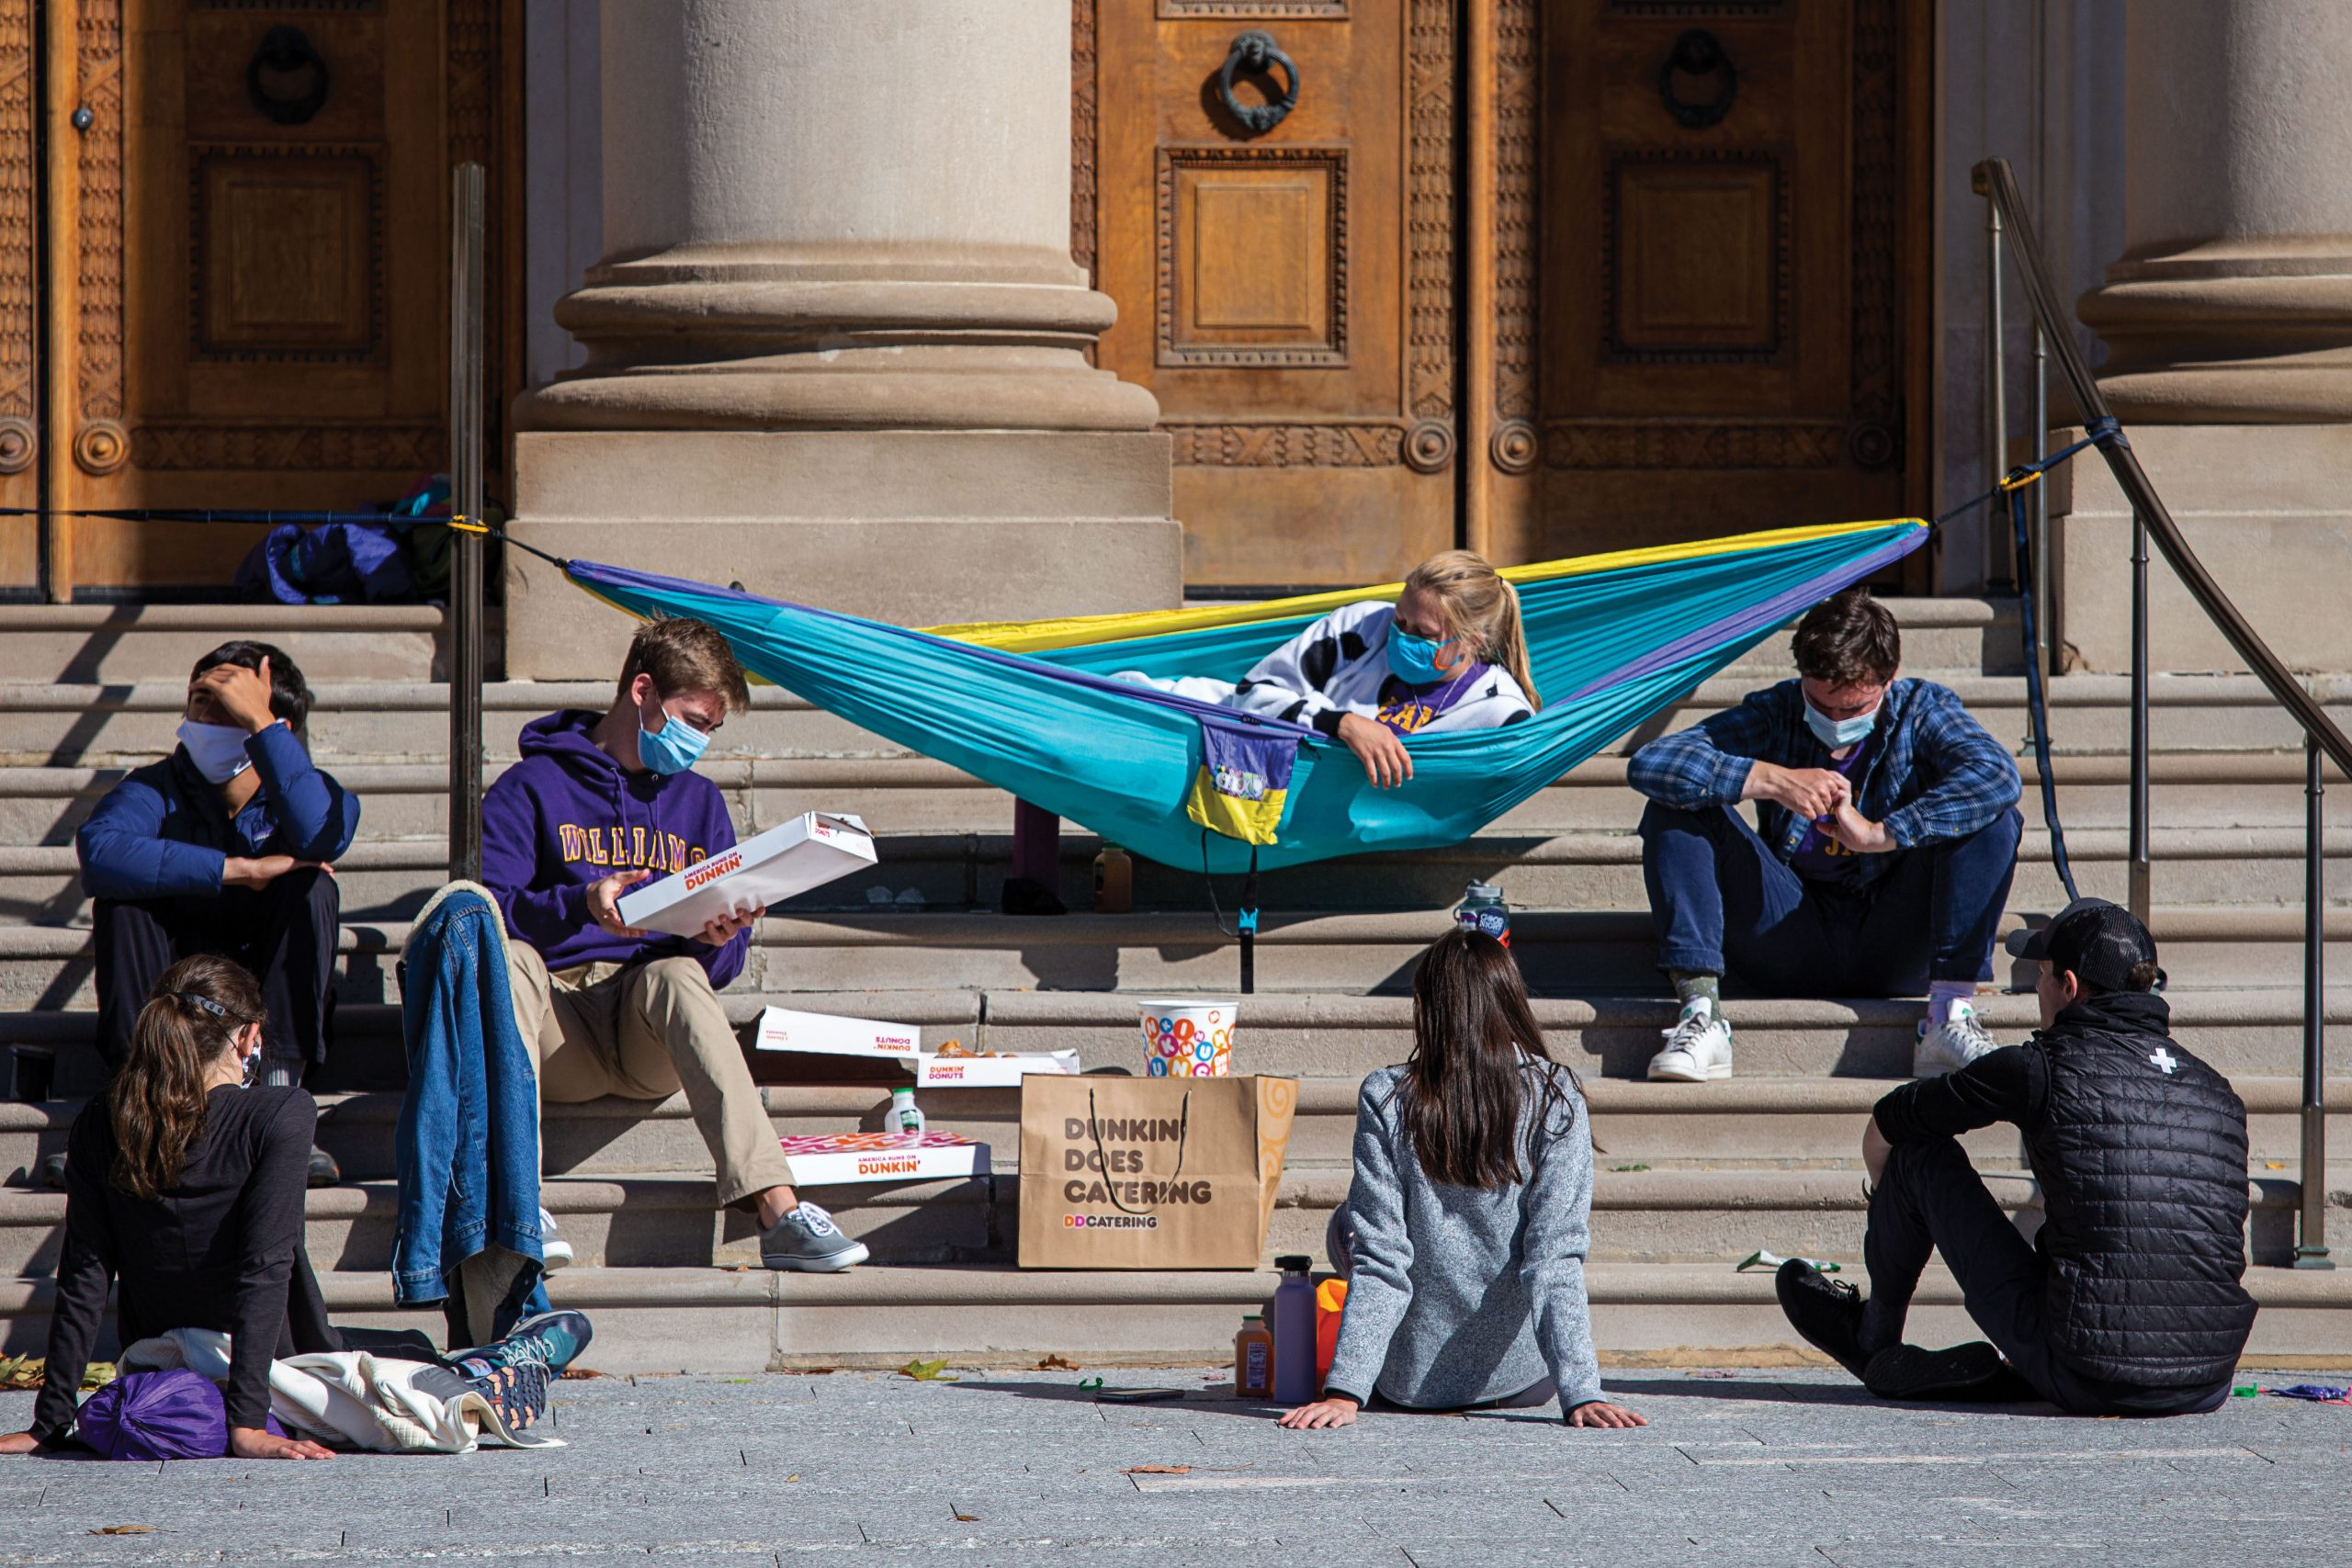 A popular fall hangout on the steps of Chapin Hall.